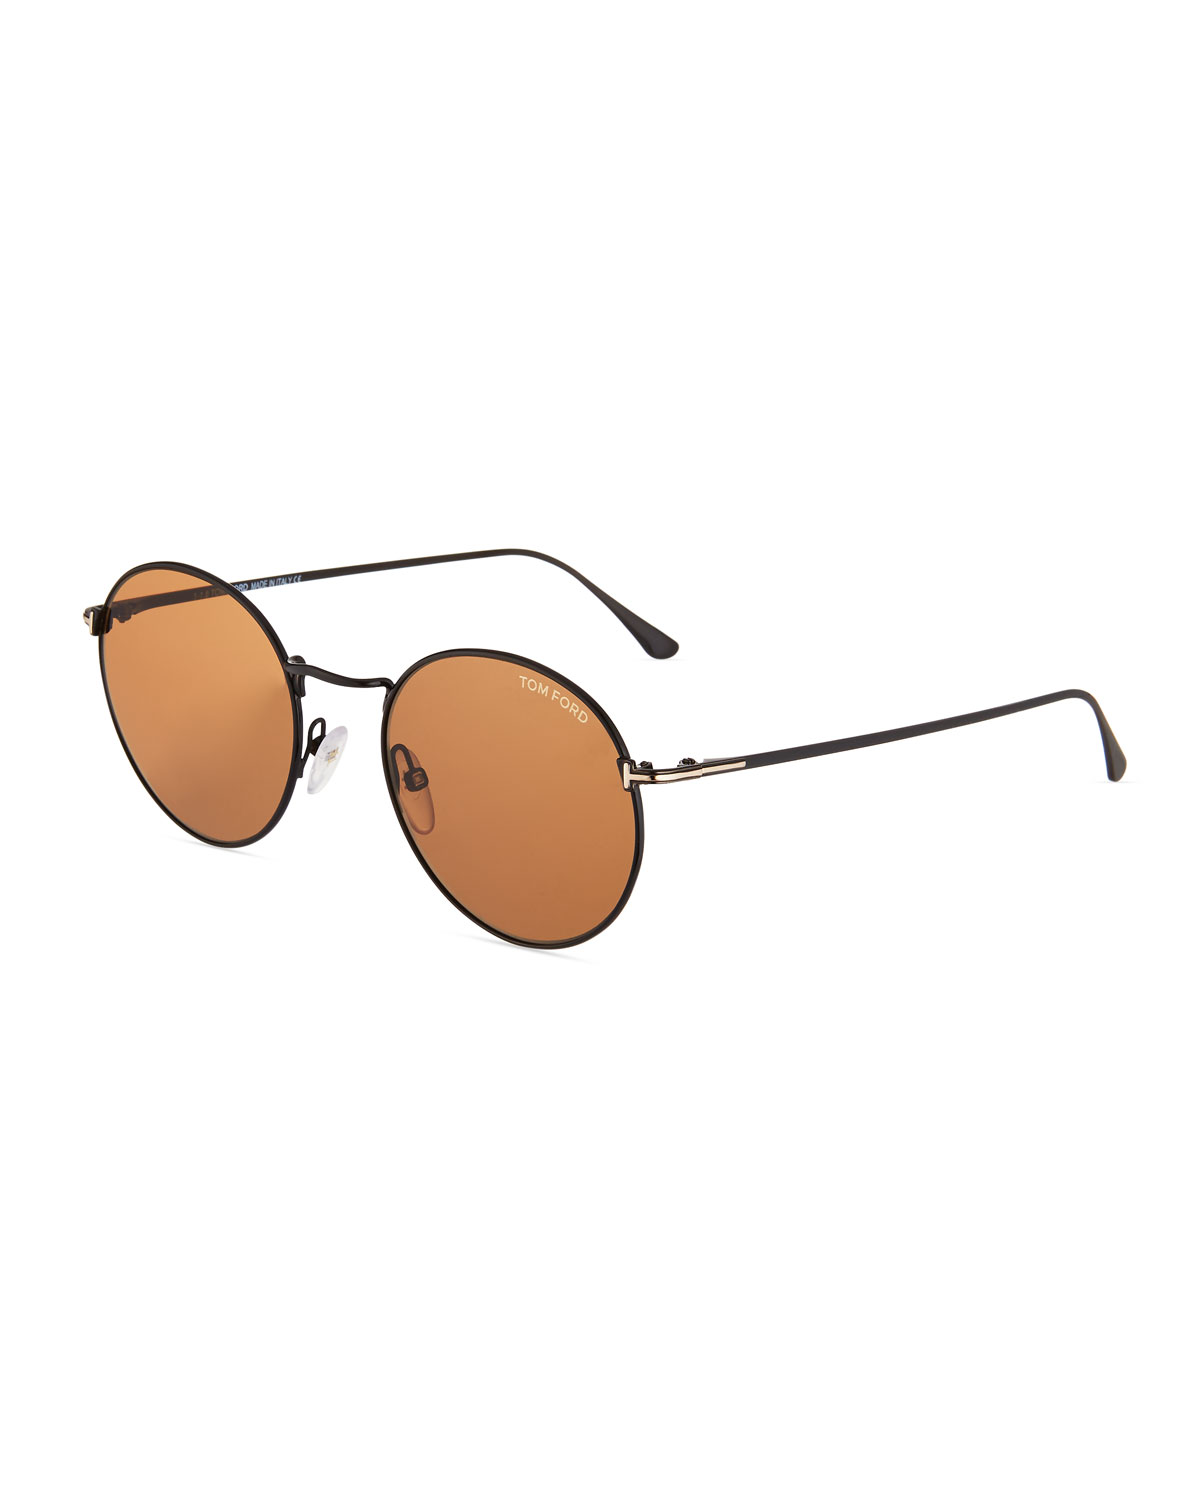 4c99bc3d20 TOM FORD Men s Ryan Round Metal Sunglasses